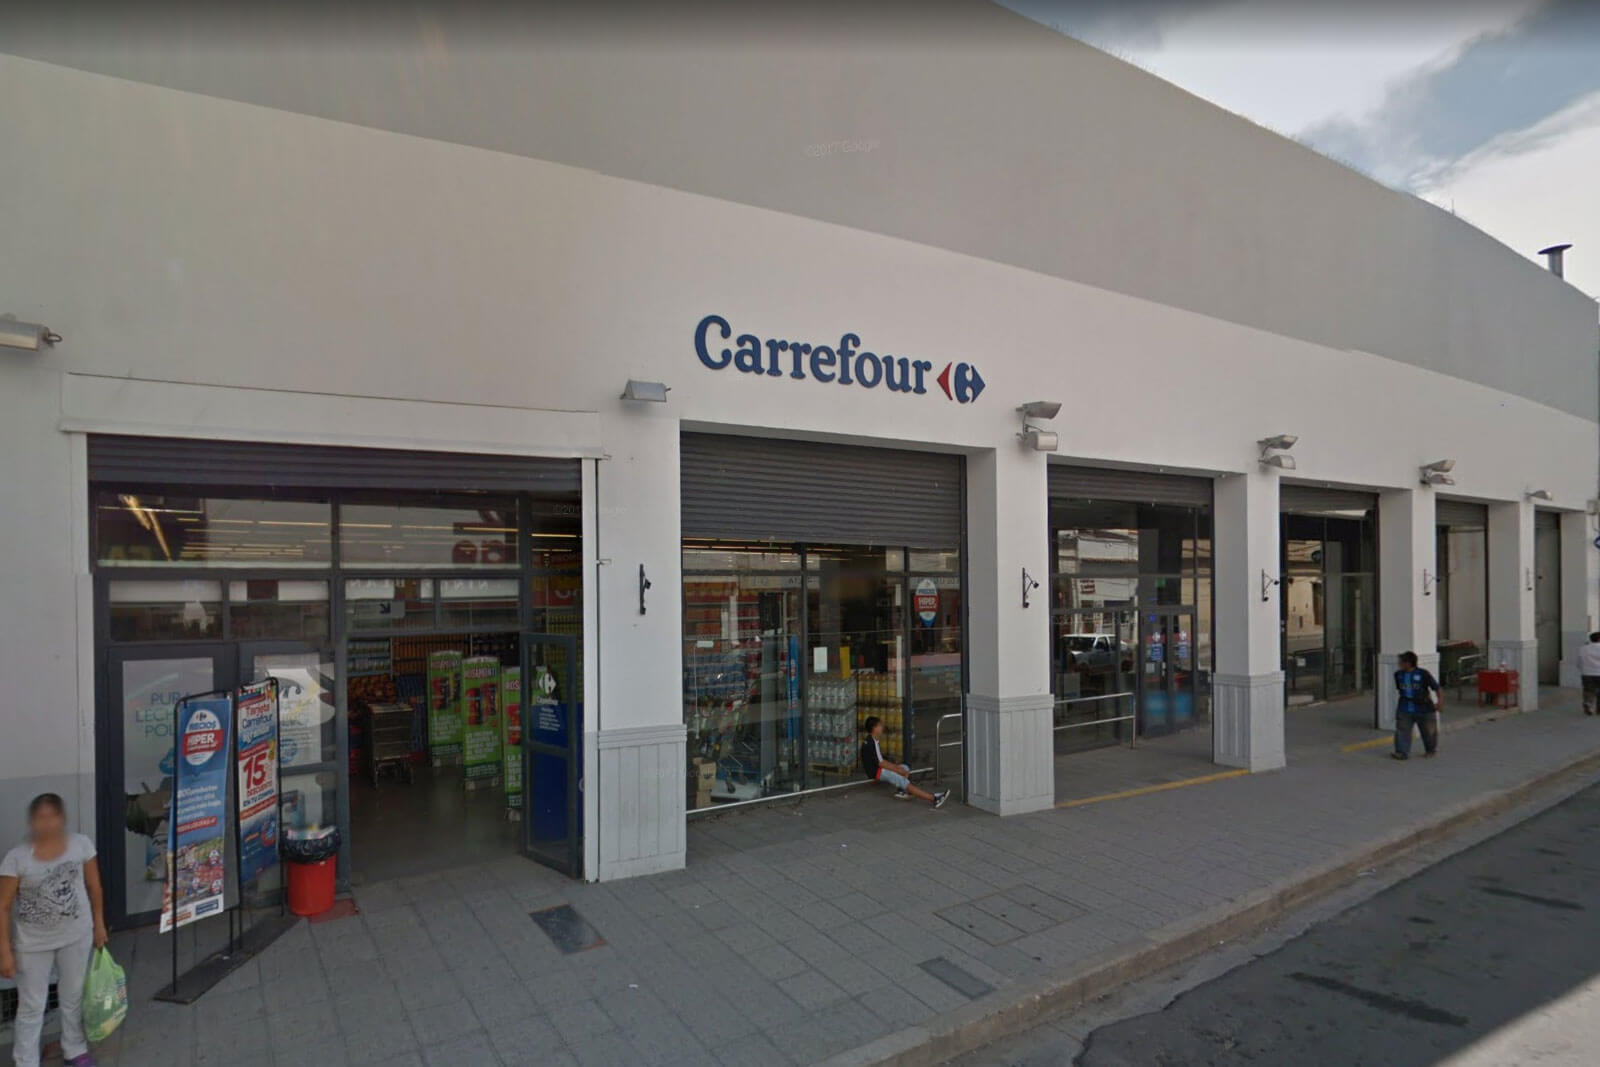 Carrefour - Cuzzuol